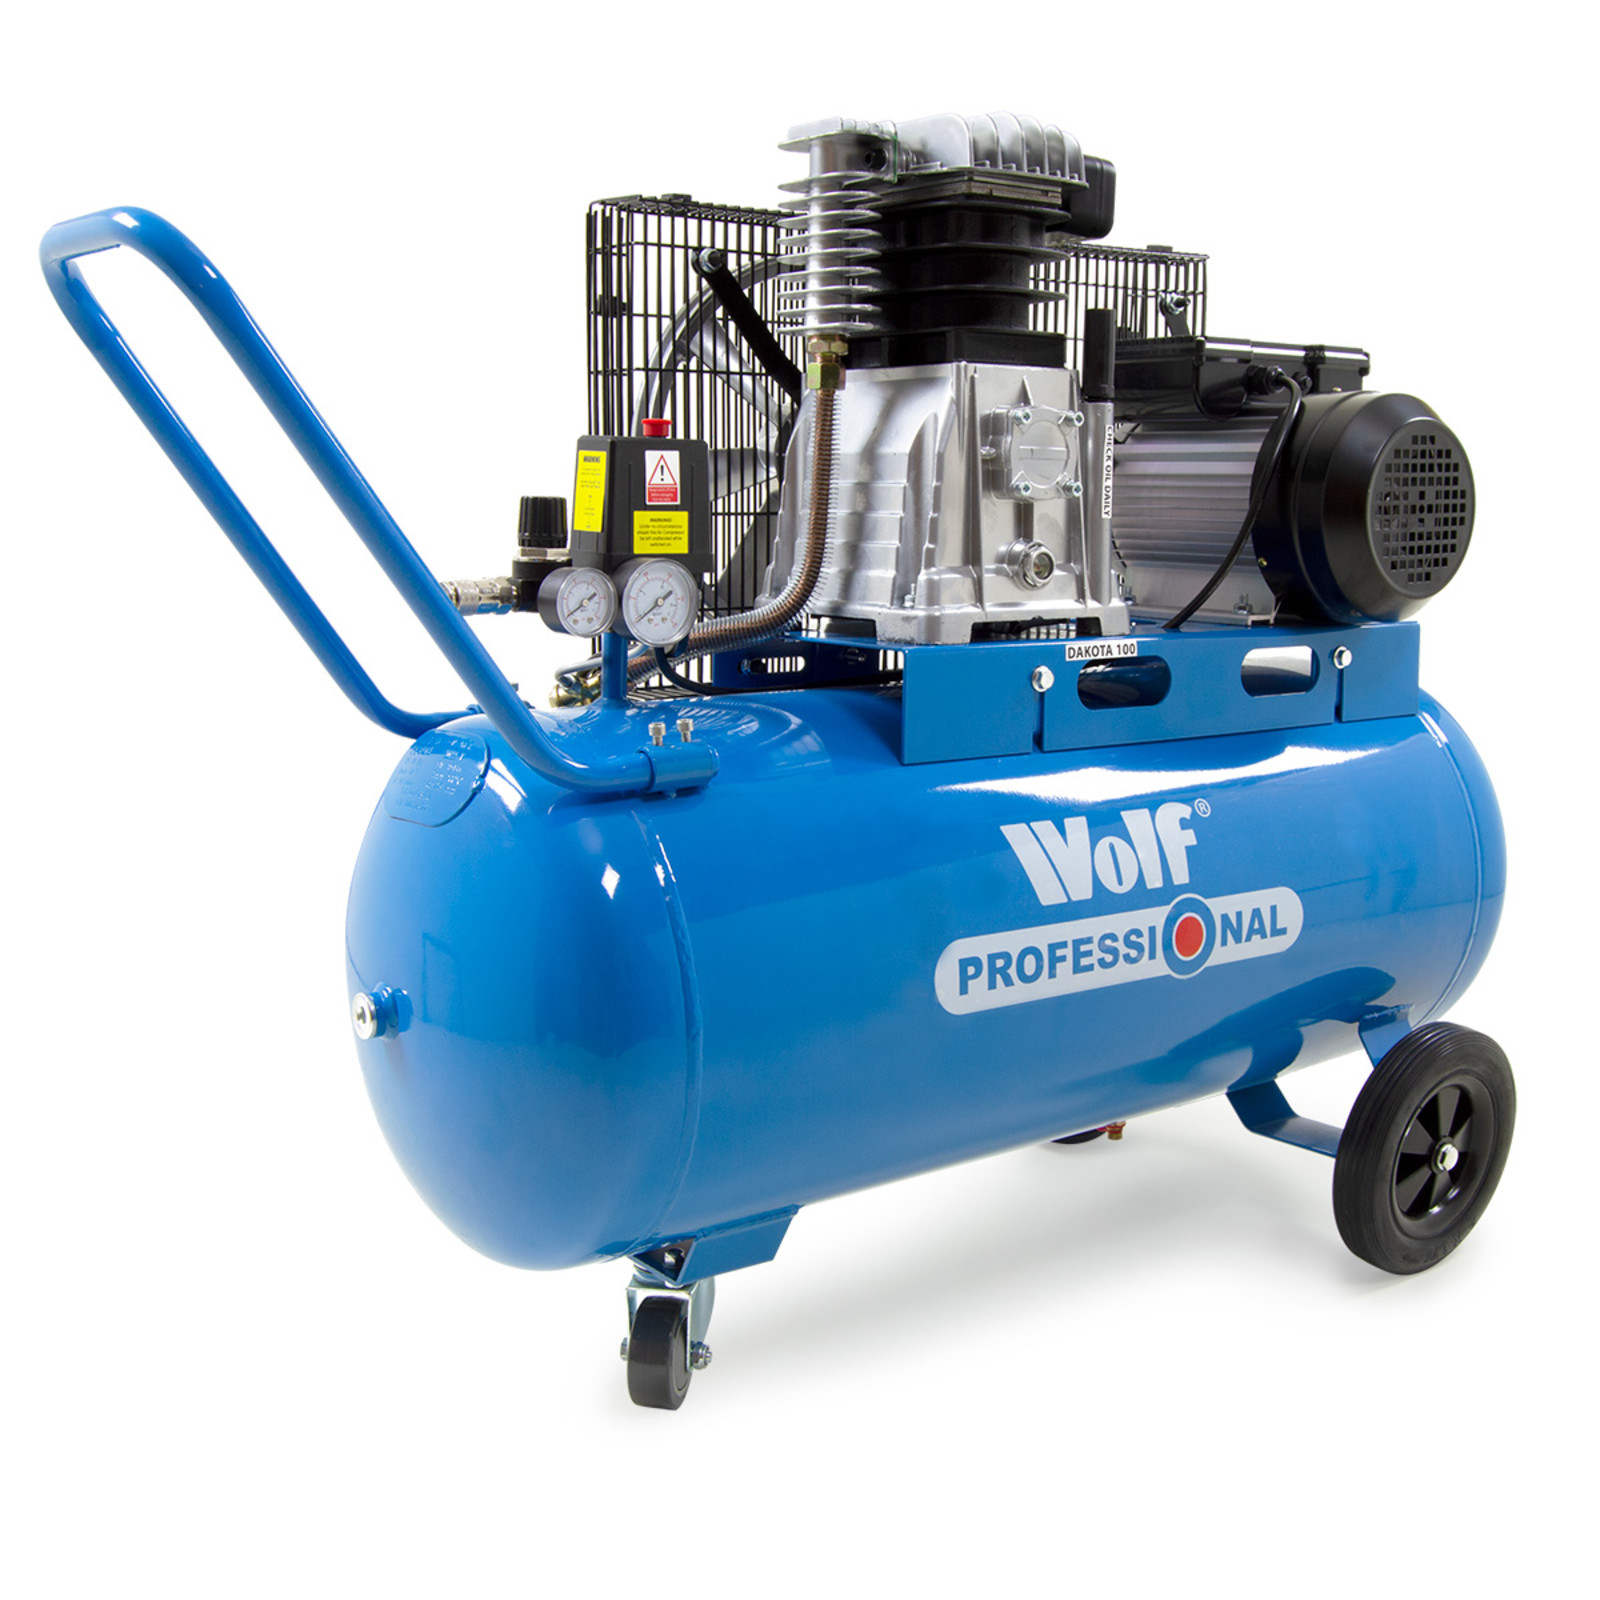 Wolf Dakota 90L Air Compressor 14 CFM 3HP. (Click on the image to enlarge)